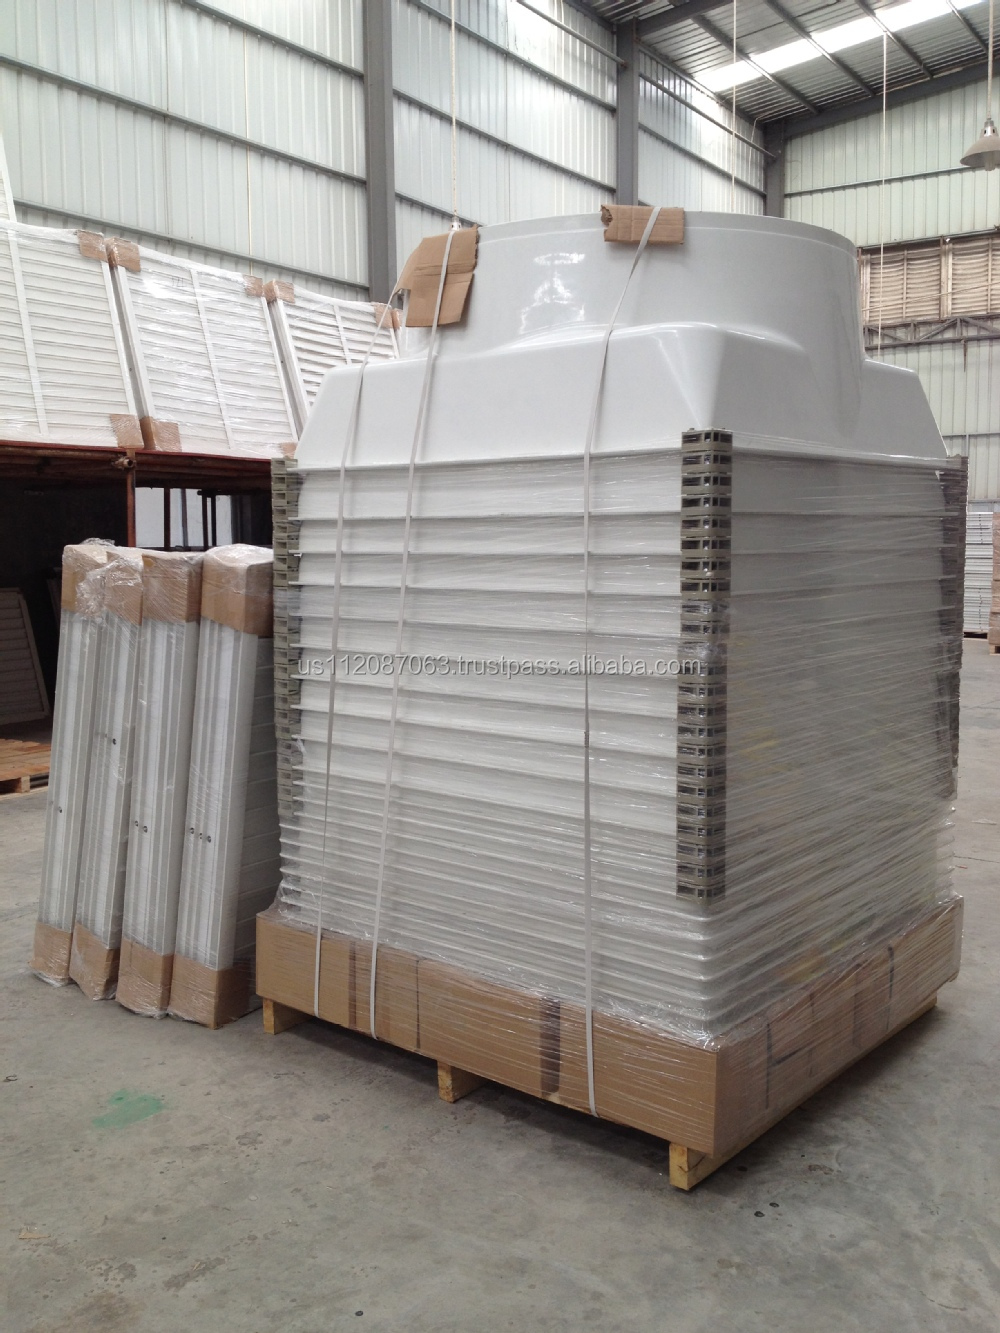 Industrial Roof Exhaust Fan,Roof Extractor Fan,Roof Ventilator ... for Industrial Roof Exhaust Fan  lp0lpmzq